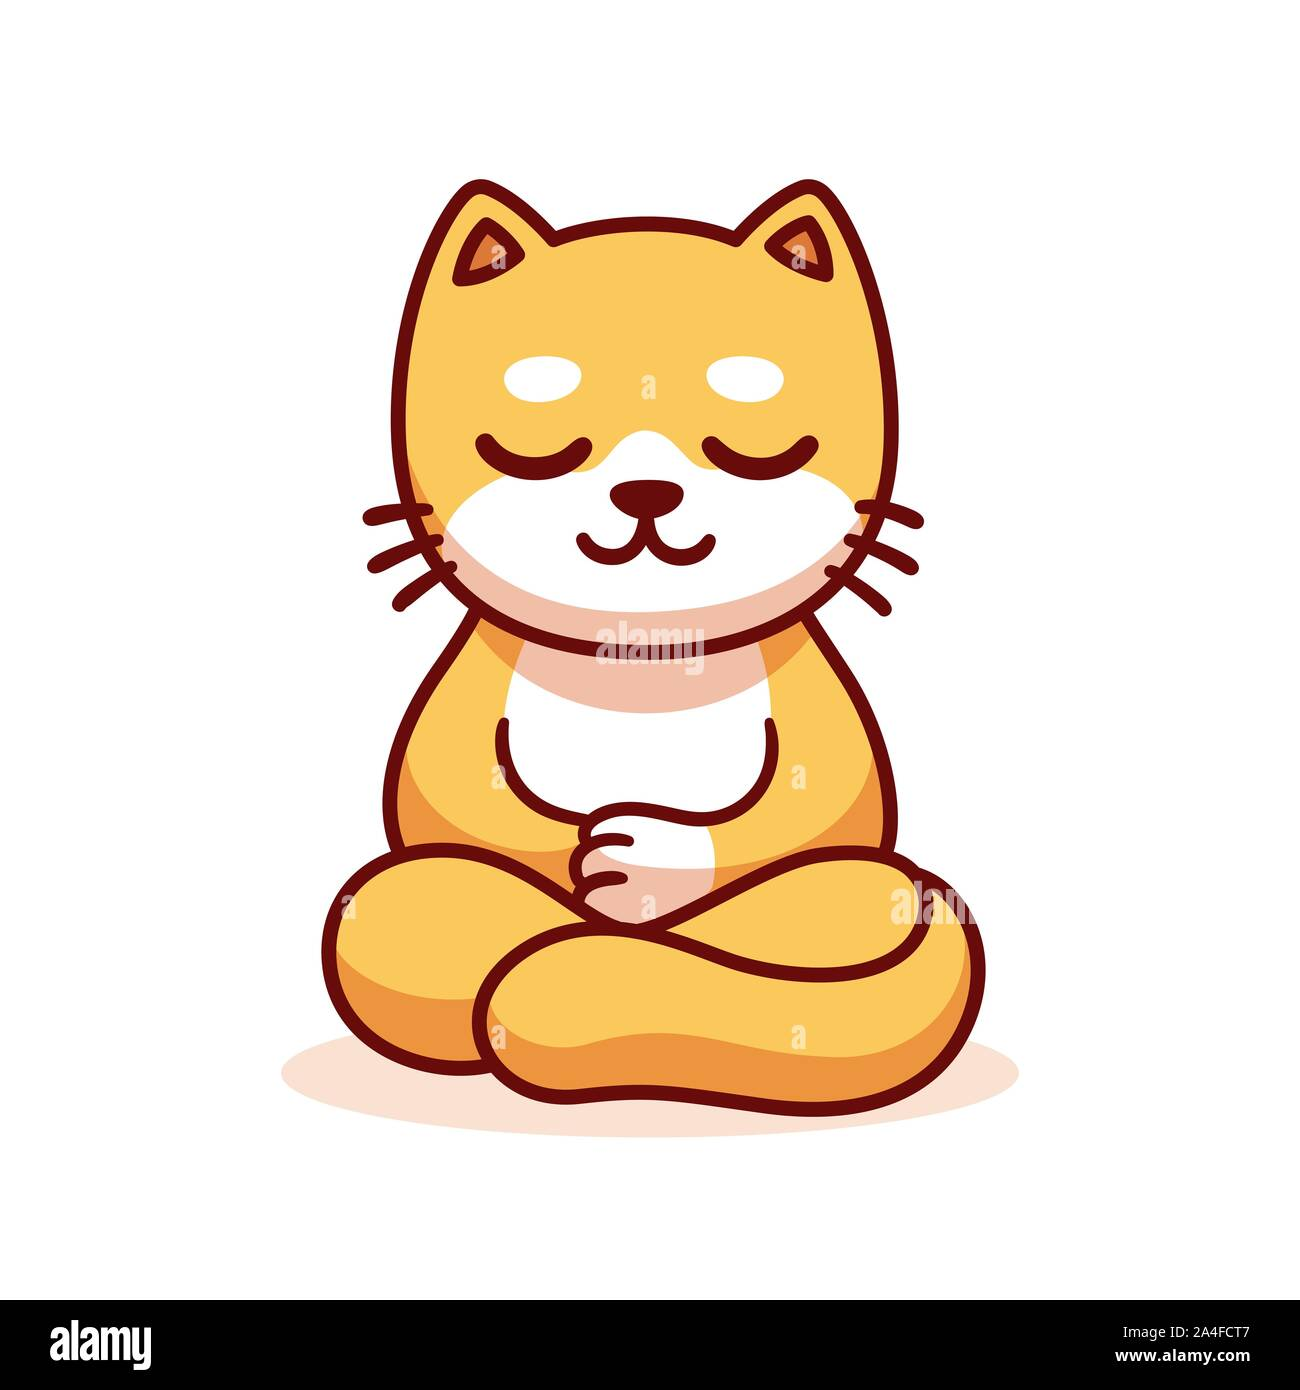 Cat Sitting In Meditation Cartoon Drawing Cute Funny Ginger Kitty Meditating In Lotus Position Vector Clip Art Illustration Stock Vector Image Art Alamy